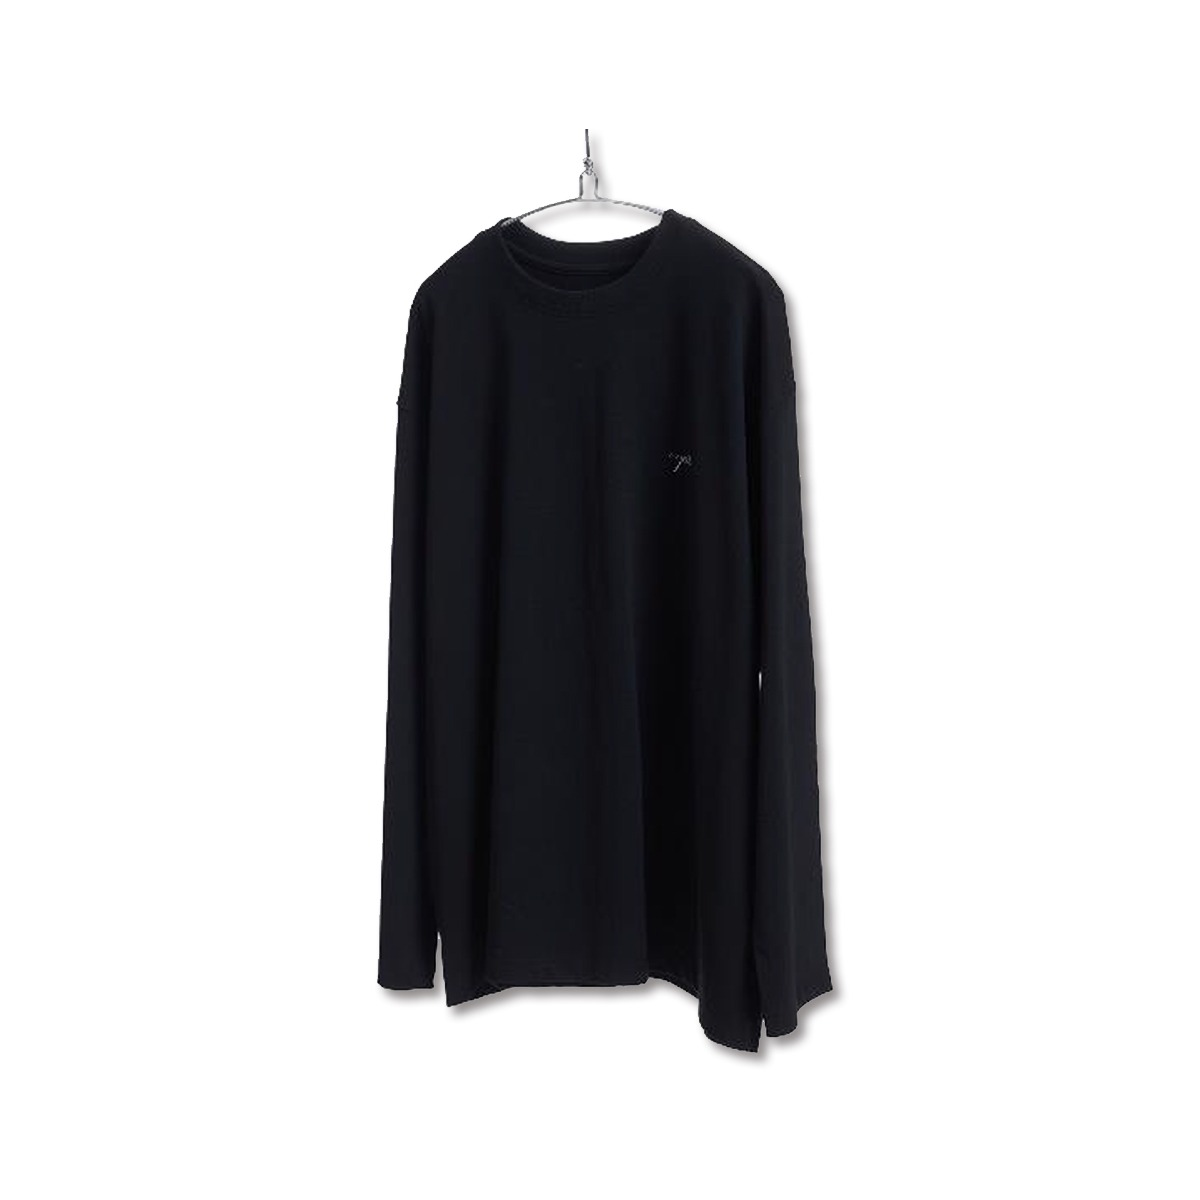 [YOUTH] L/S LOGO T-SHIRT 'BLACK'